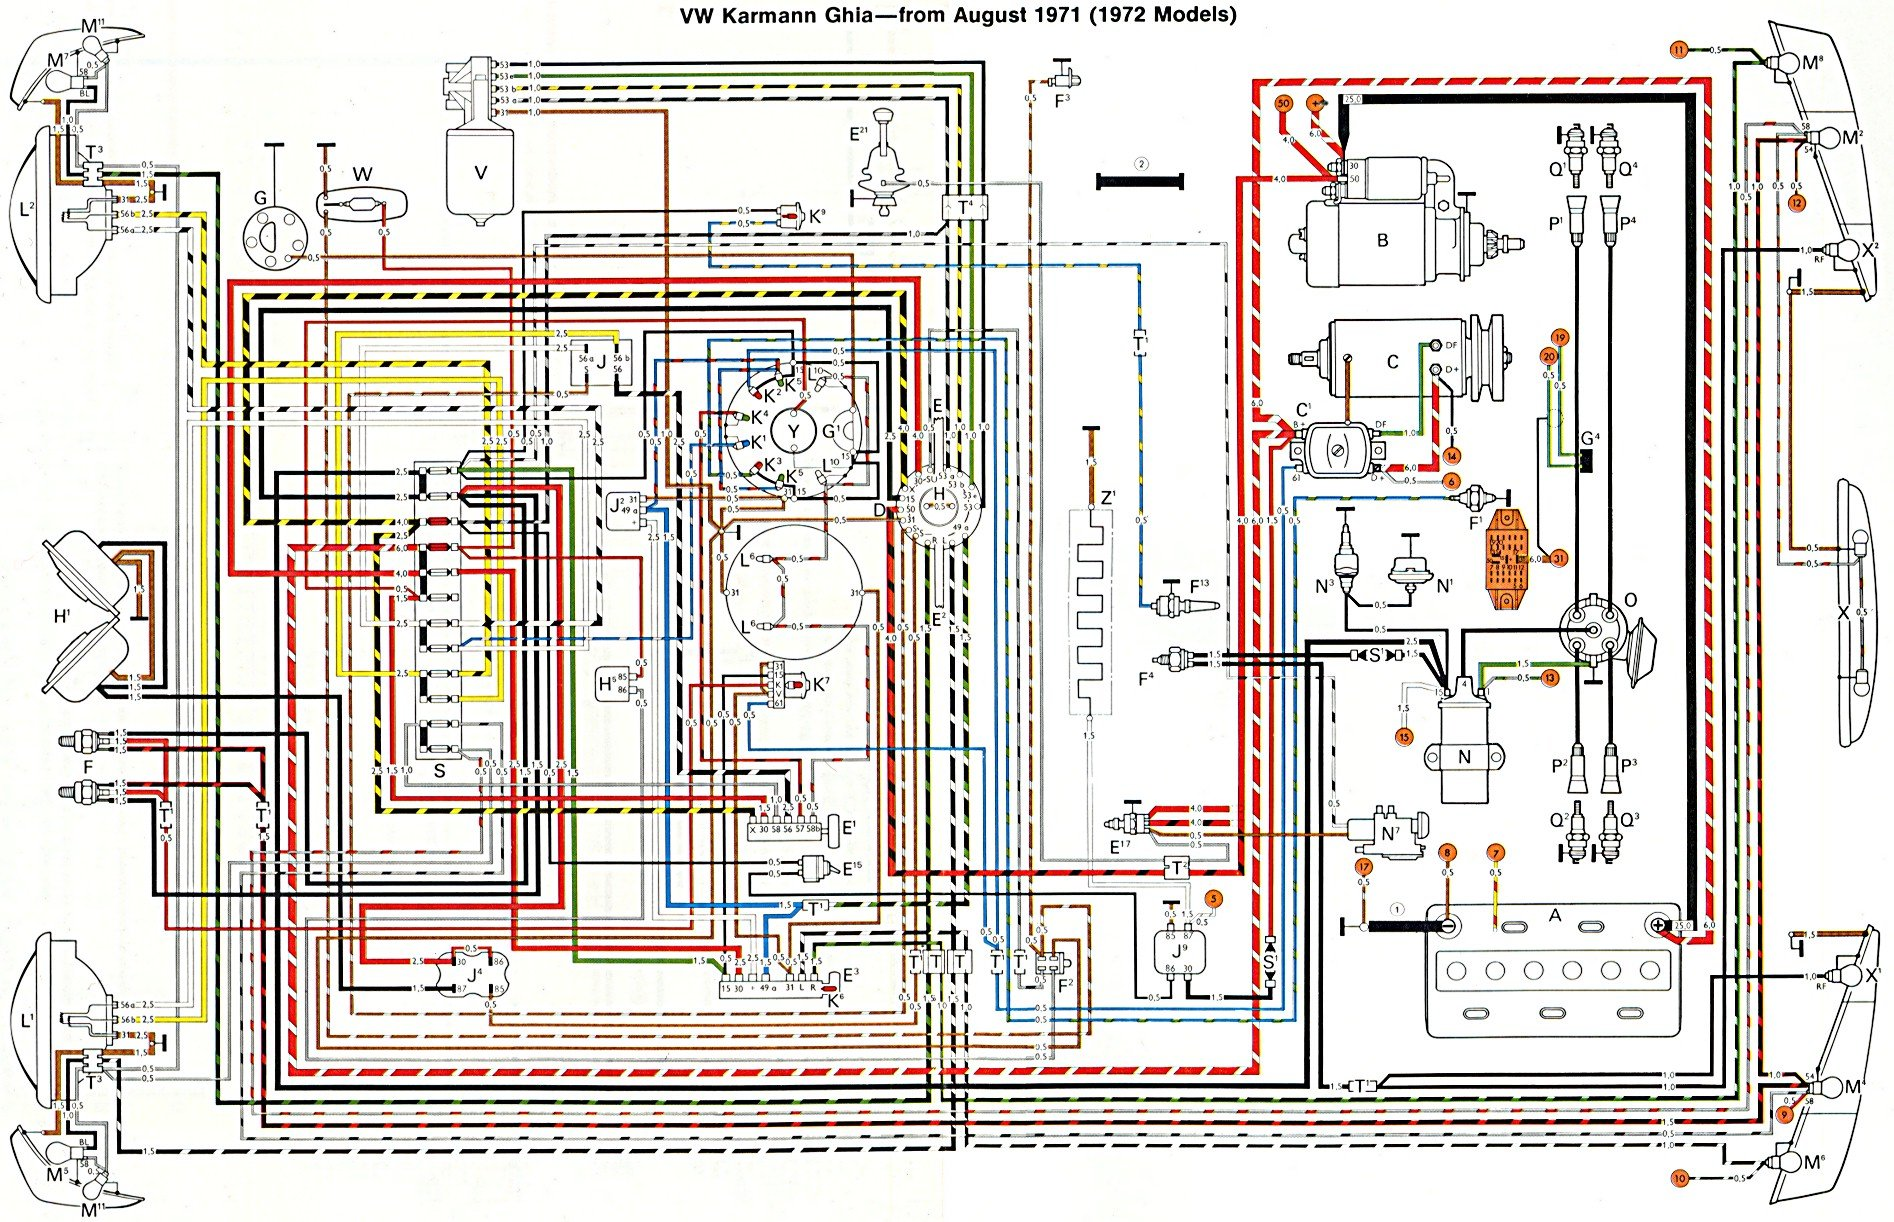 72ghia 72 vw beetle wiring diagram 2001 vw alternator wire diagram \u2022 free 1975 vw beetle wiring harness at edmiracle.co